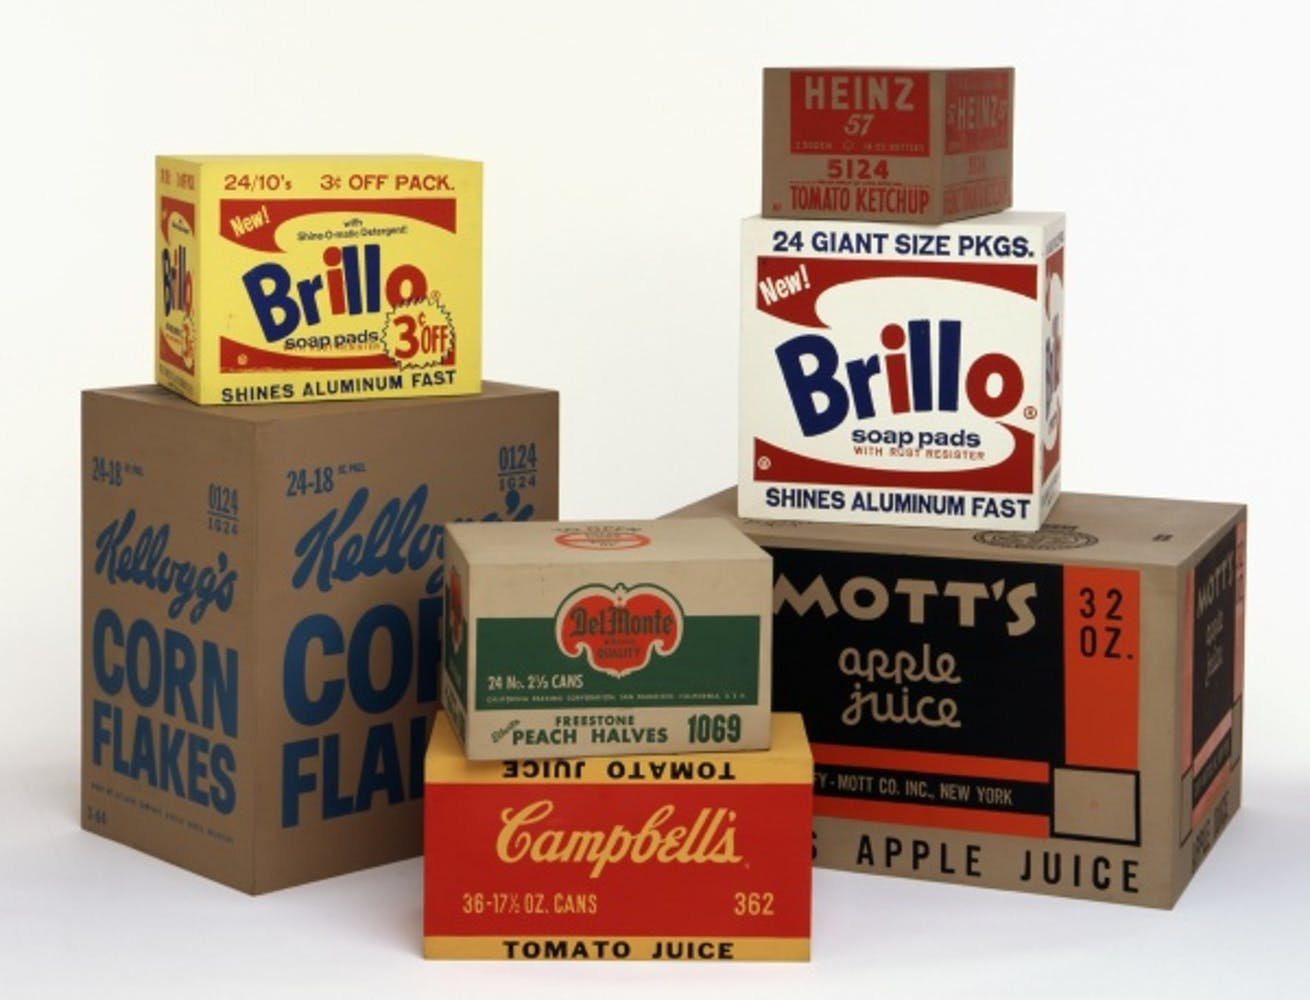 Andy Warhol, Yellow Brillo Box, 1964; White Brillo Box, 1964; Mott's Apple Juice Box, 1964; Heinz Tomato Ketchup Box, 1964; Del Monte Peach Halves Box, 1964; Campbell's Tomato Juice Box, 1964; Kellogg's Corn Flakes Box, 1964